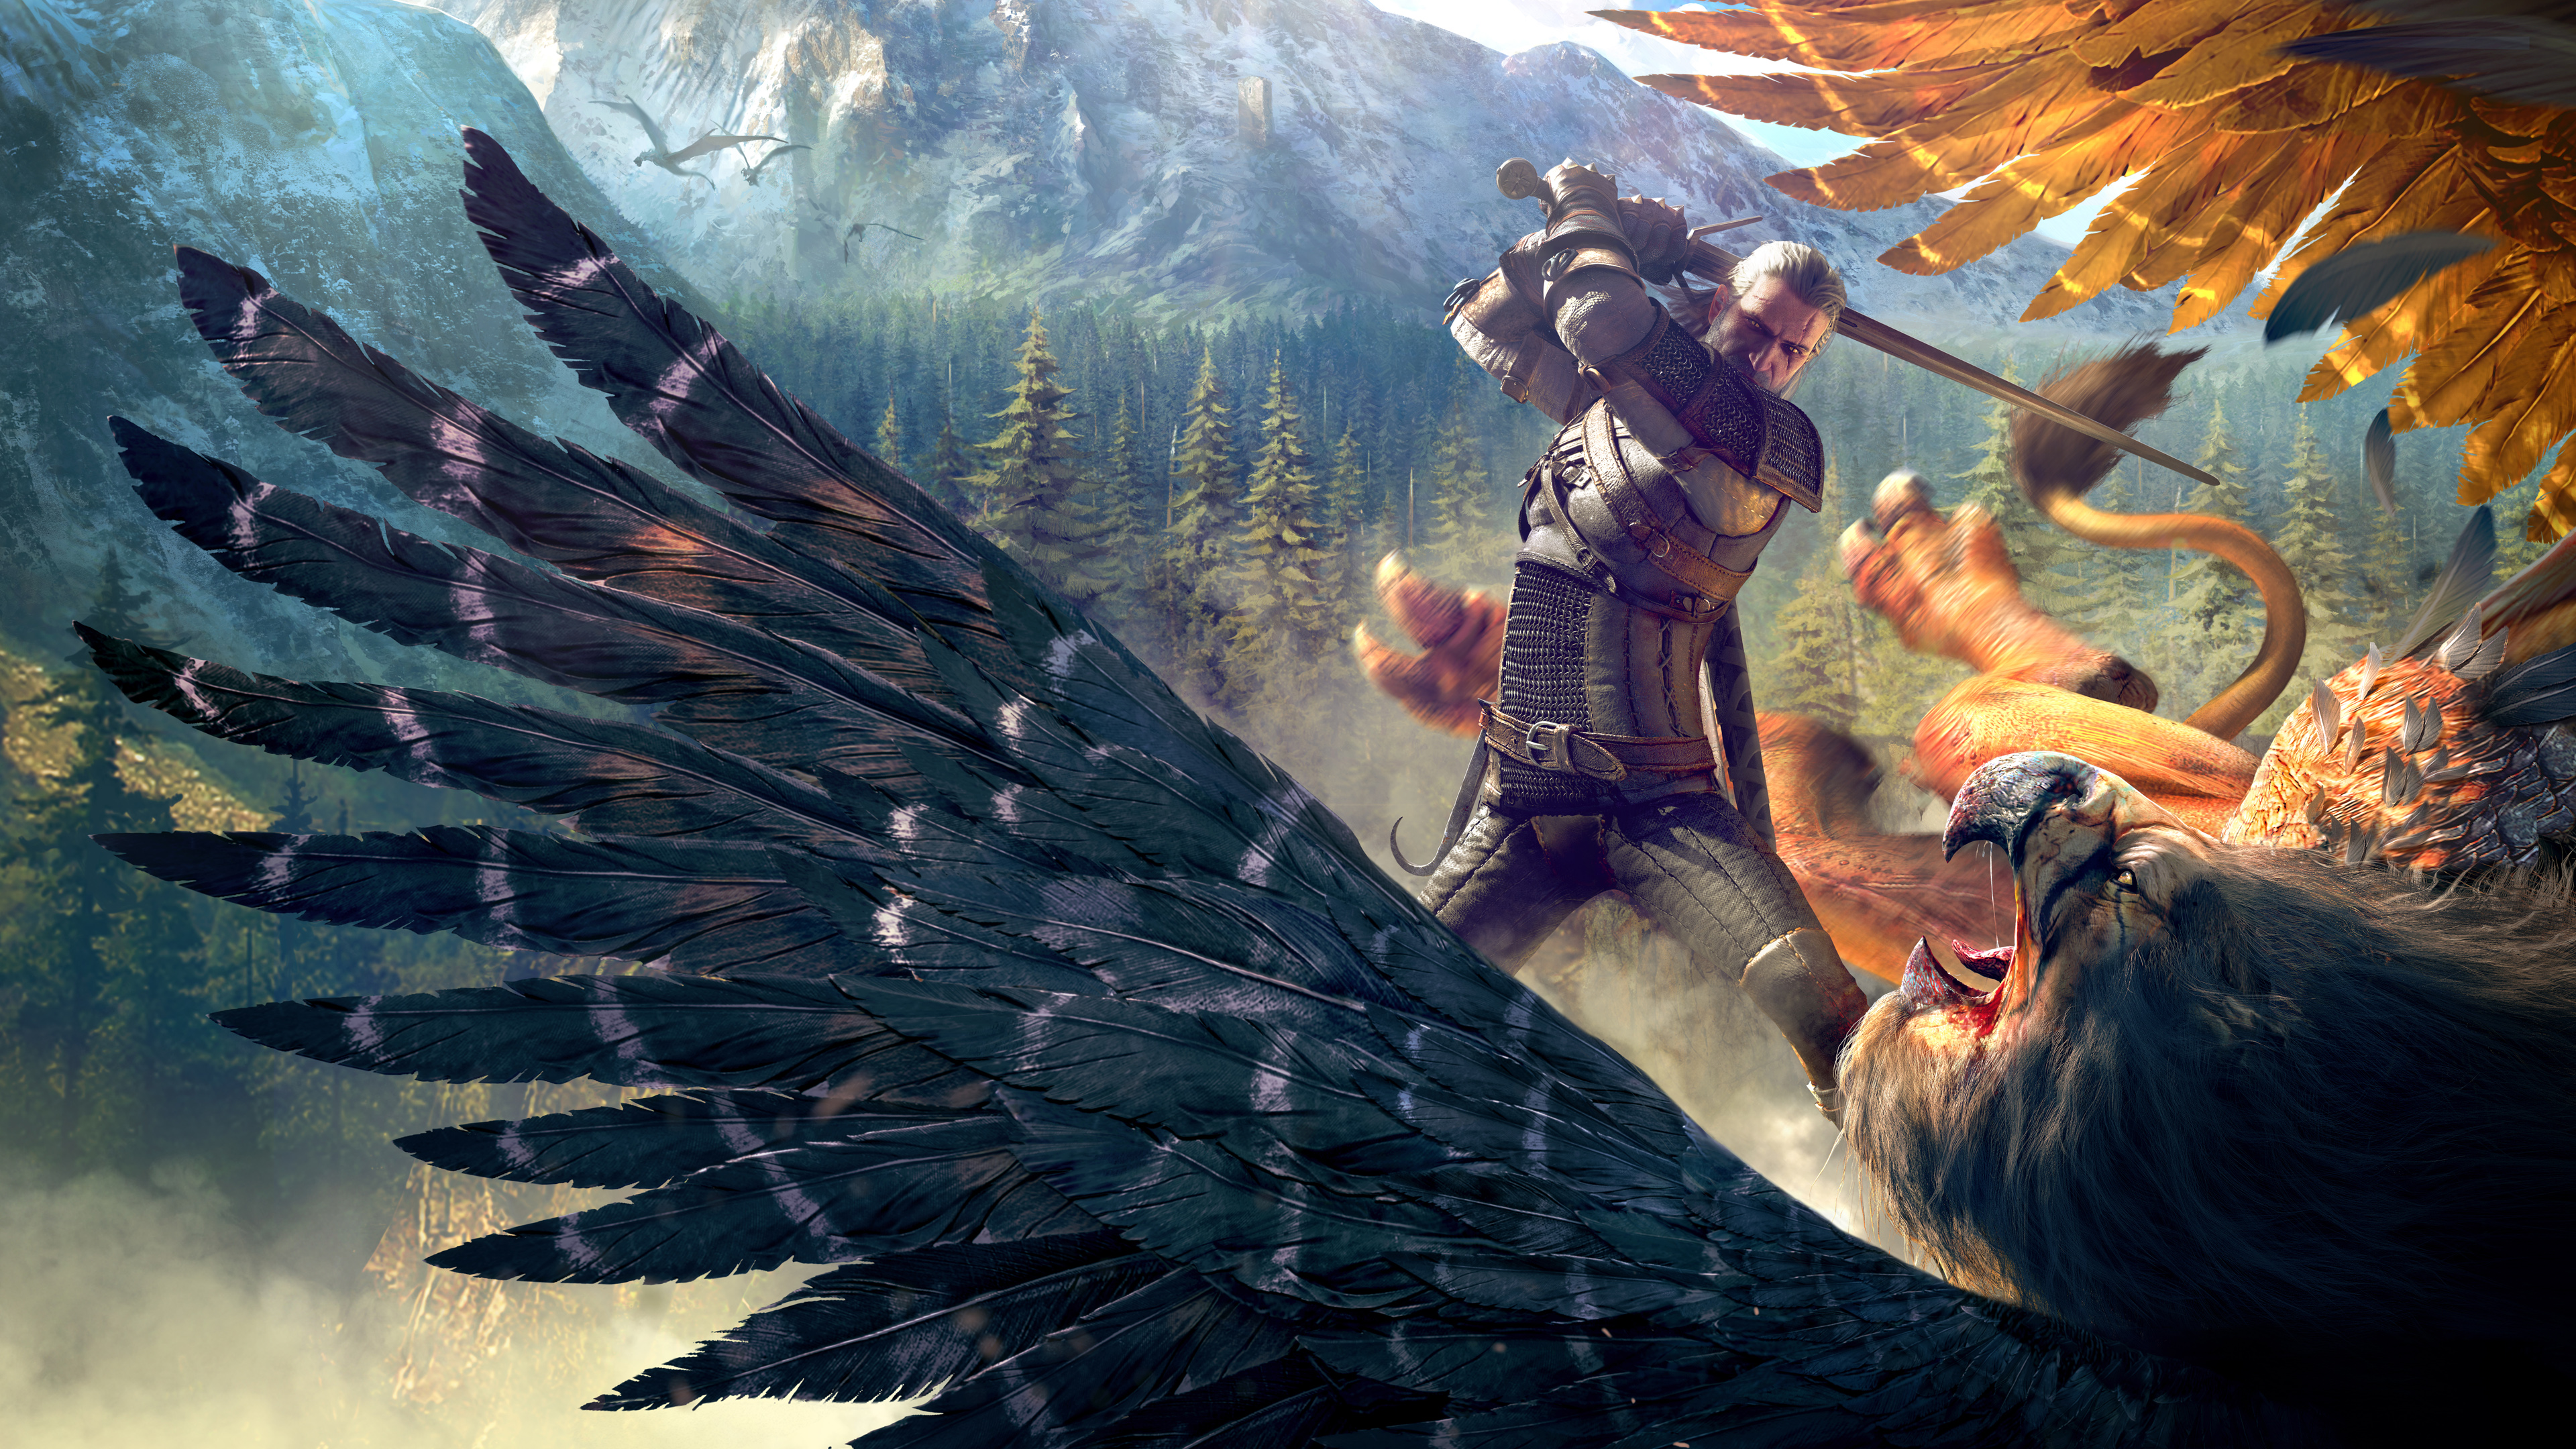 HD Wallpapers The Witcher 3 Wild Hunt Gameplay